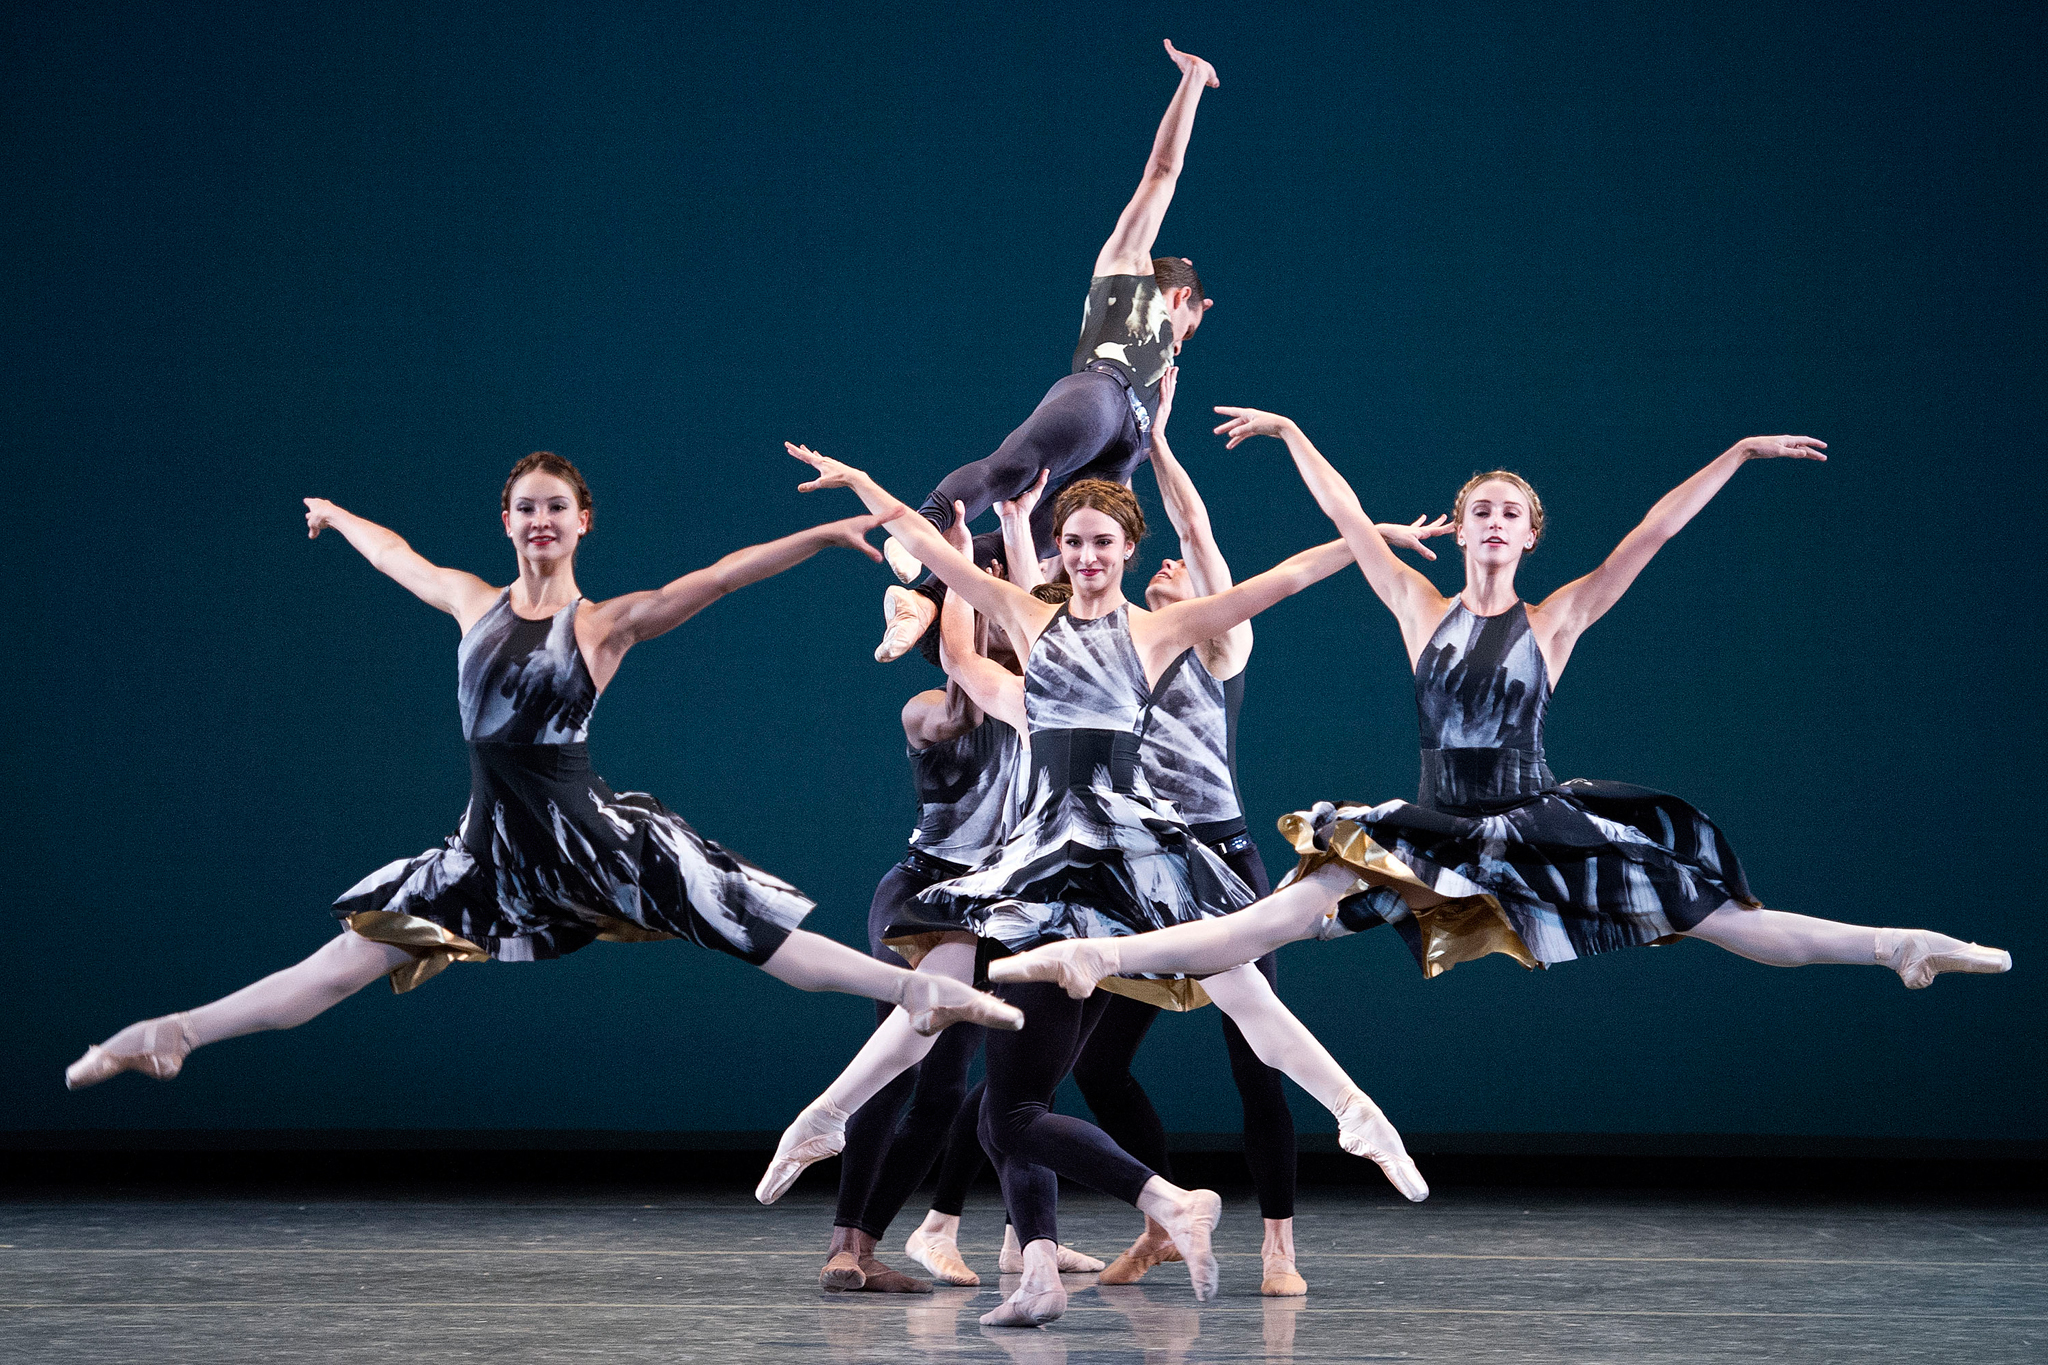 Catch premieres during American Ballet Theater's spring season